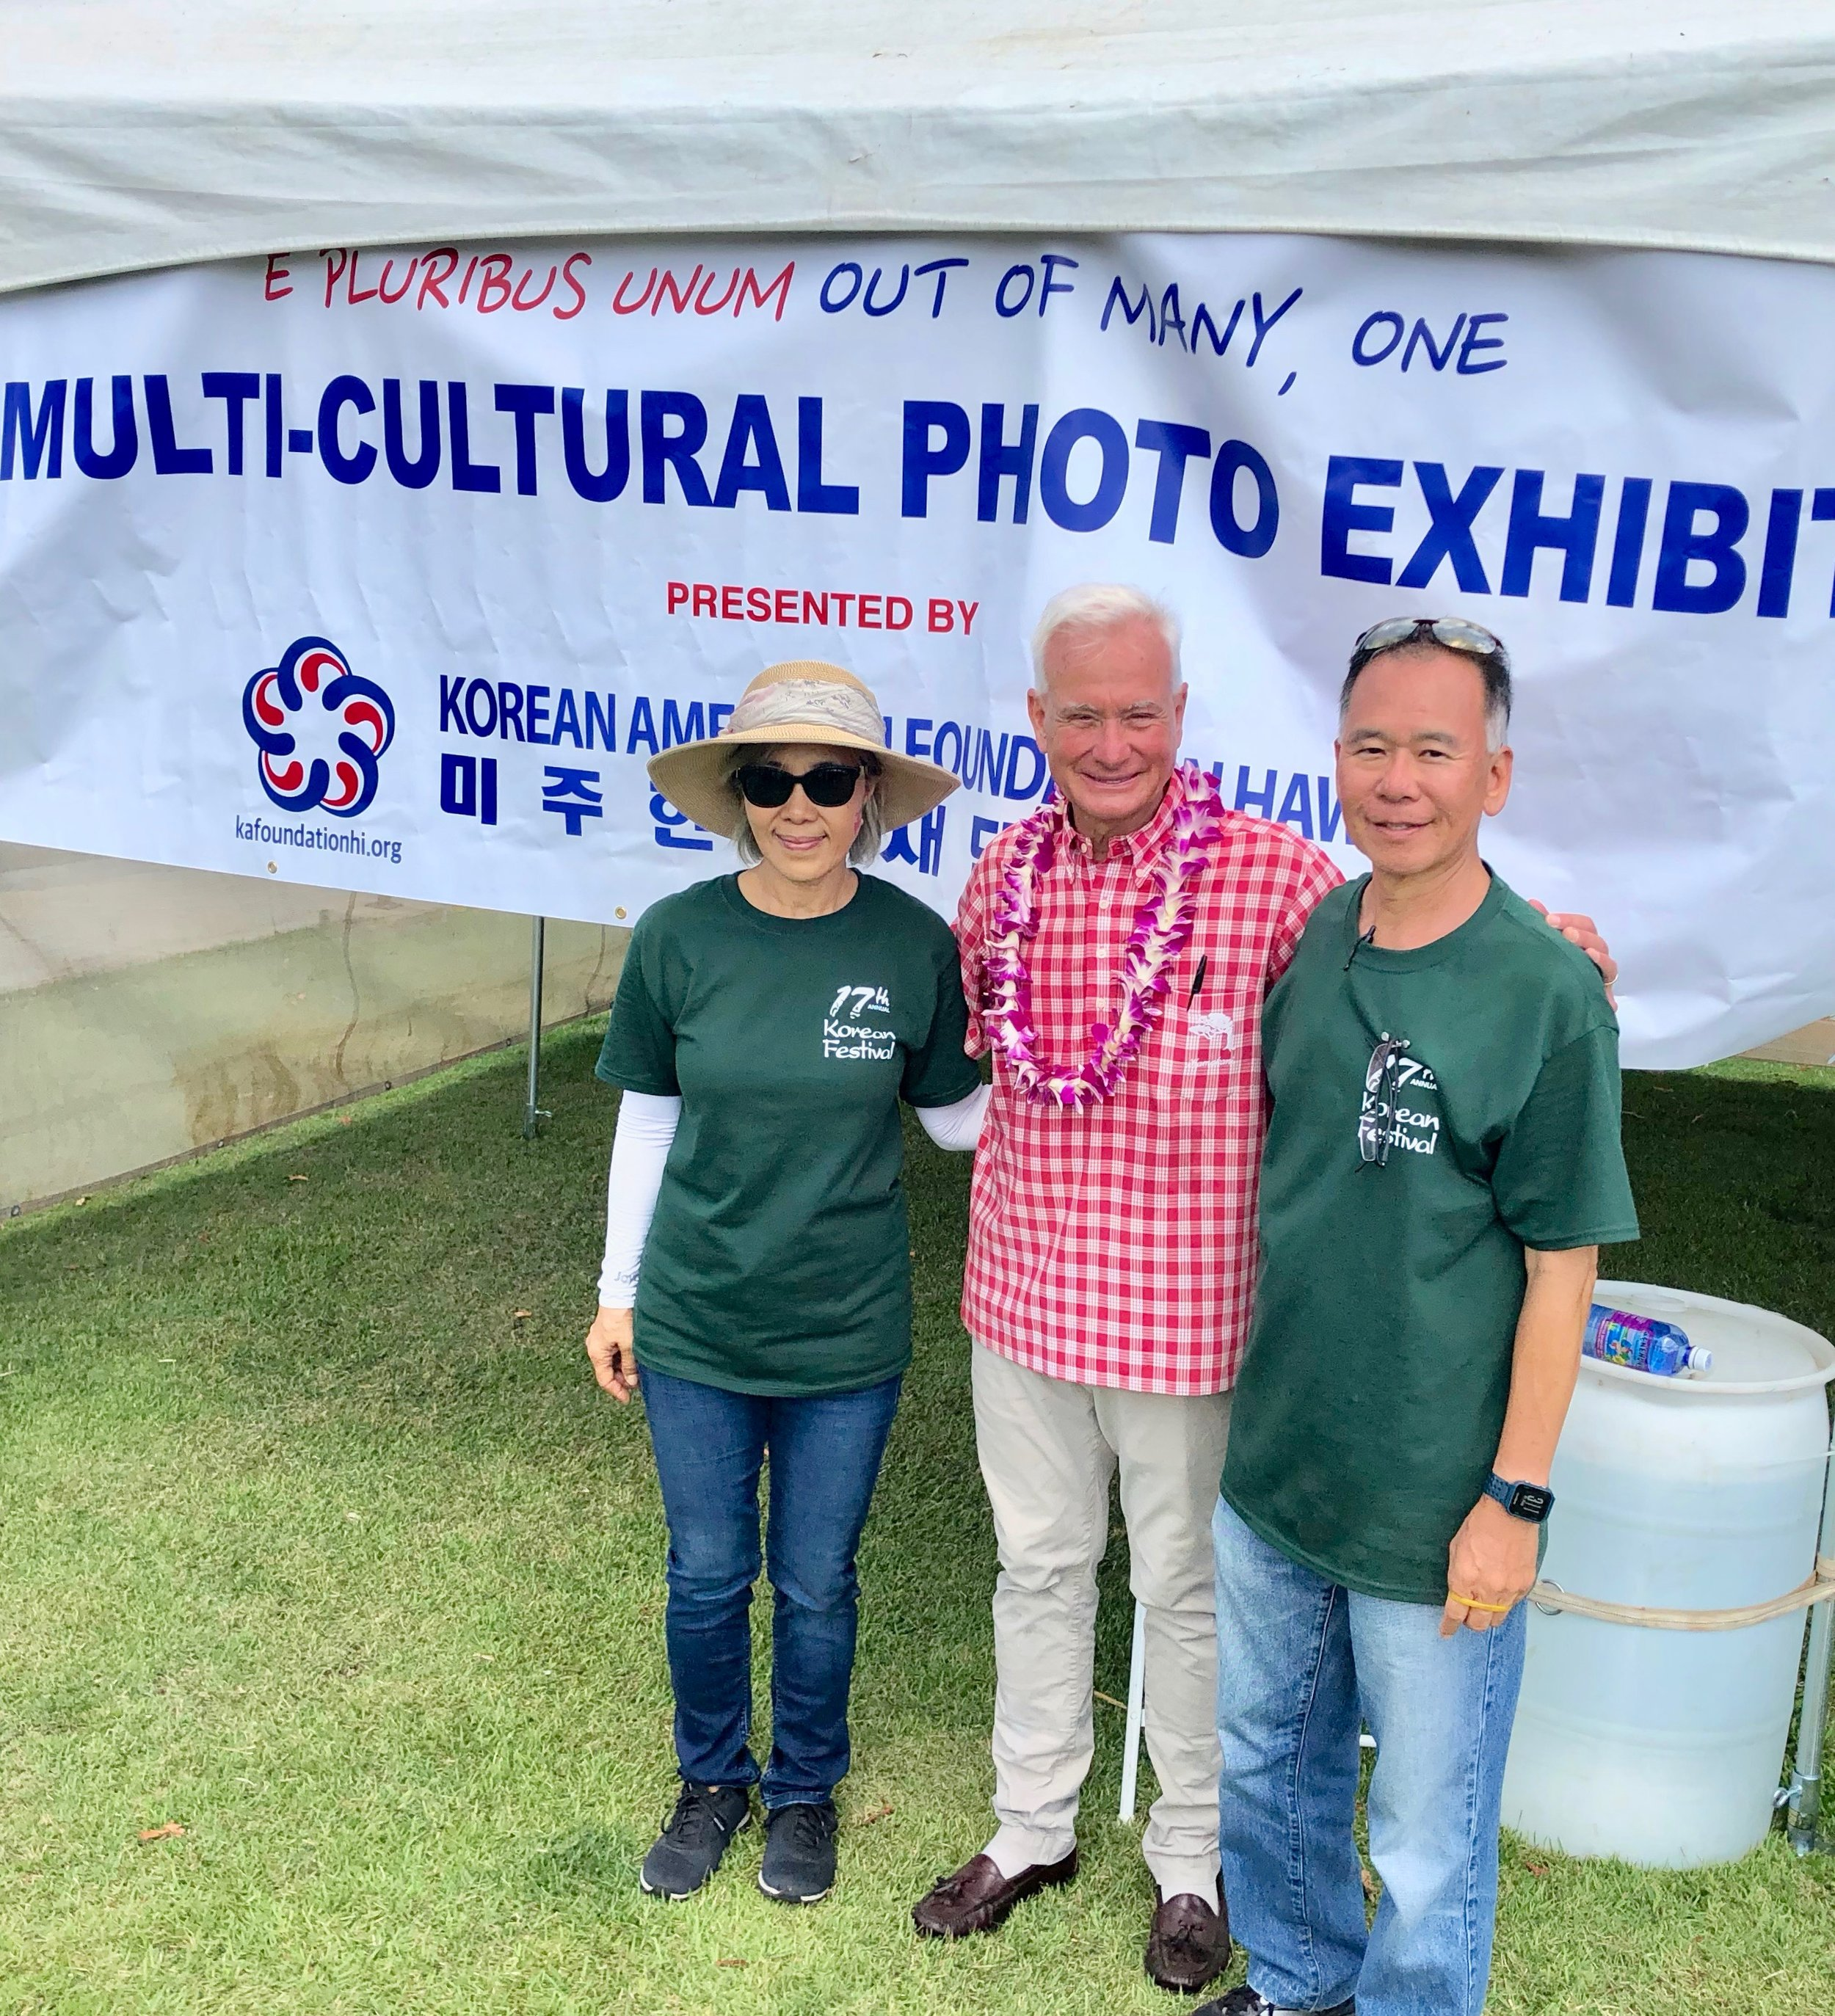 Multi-cultural Photo Exhibit 2019